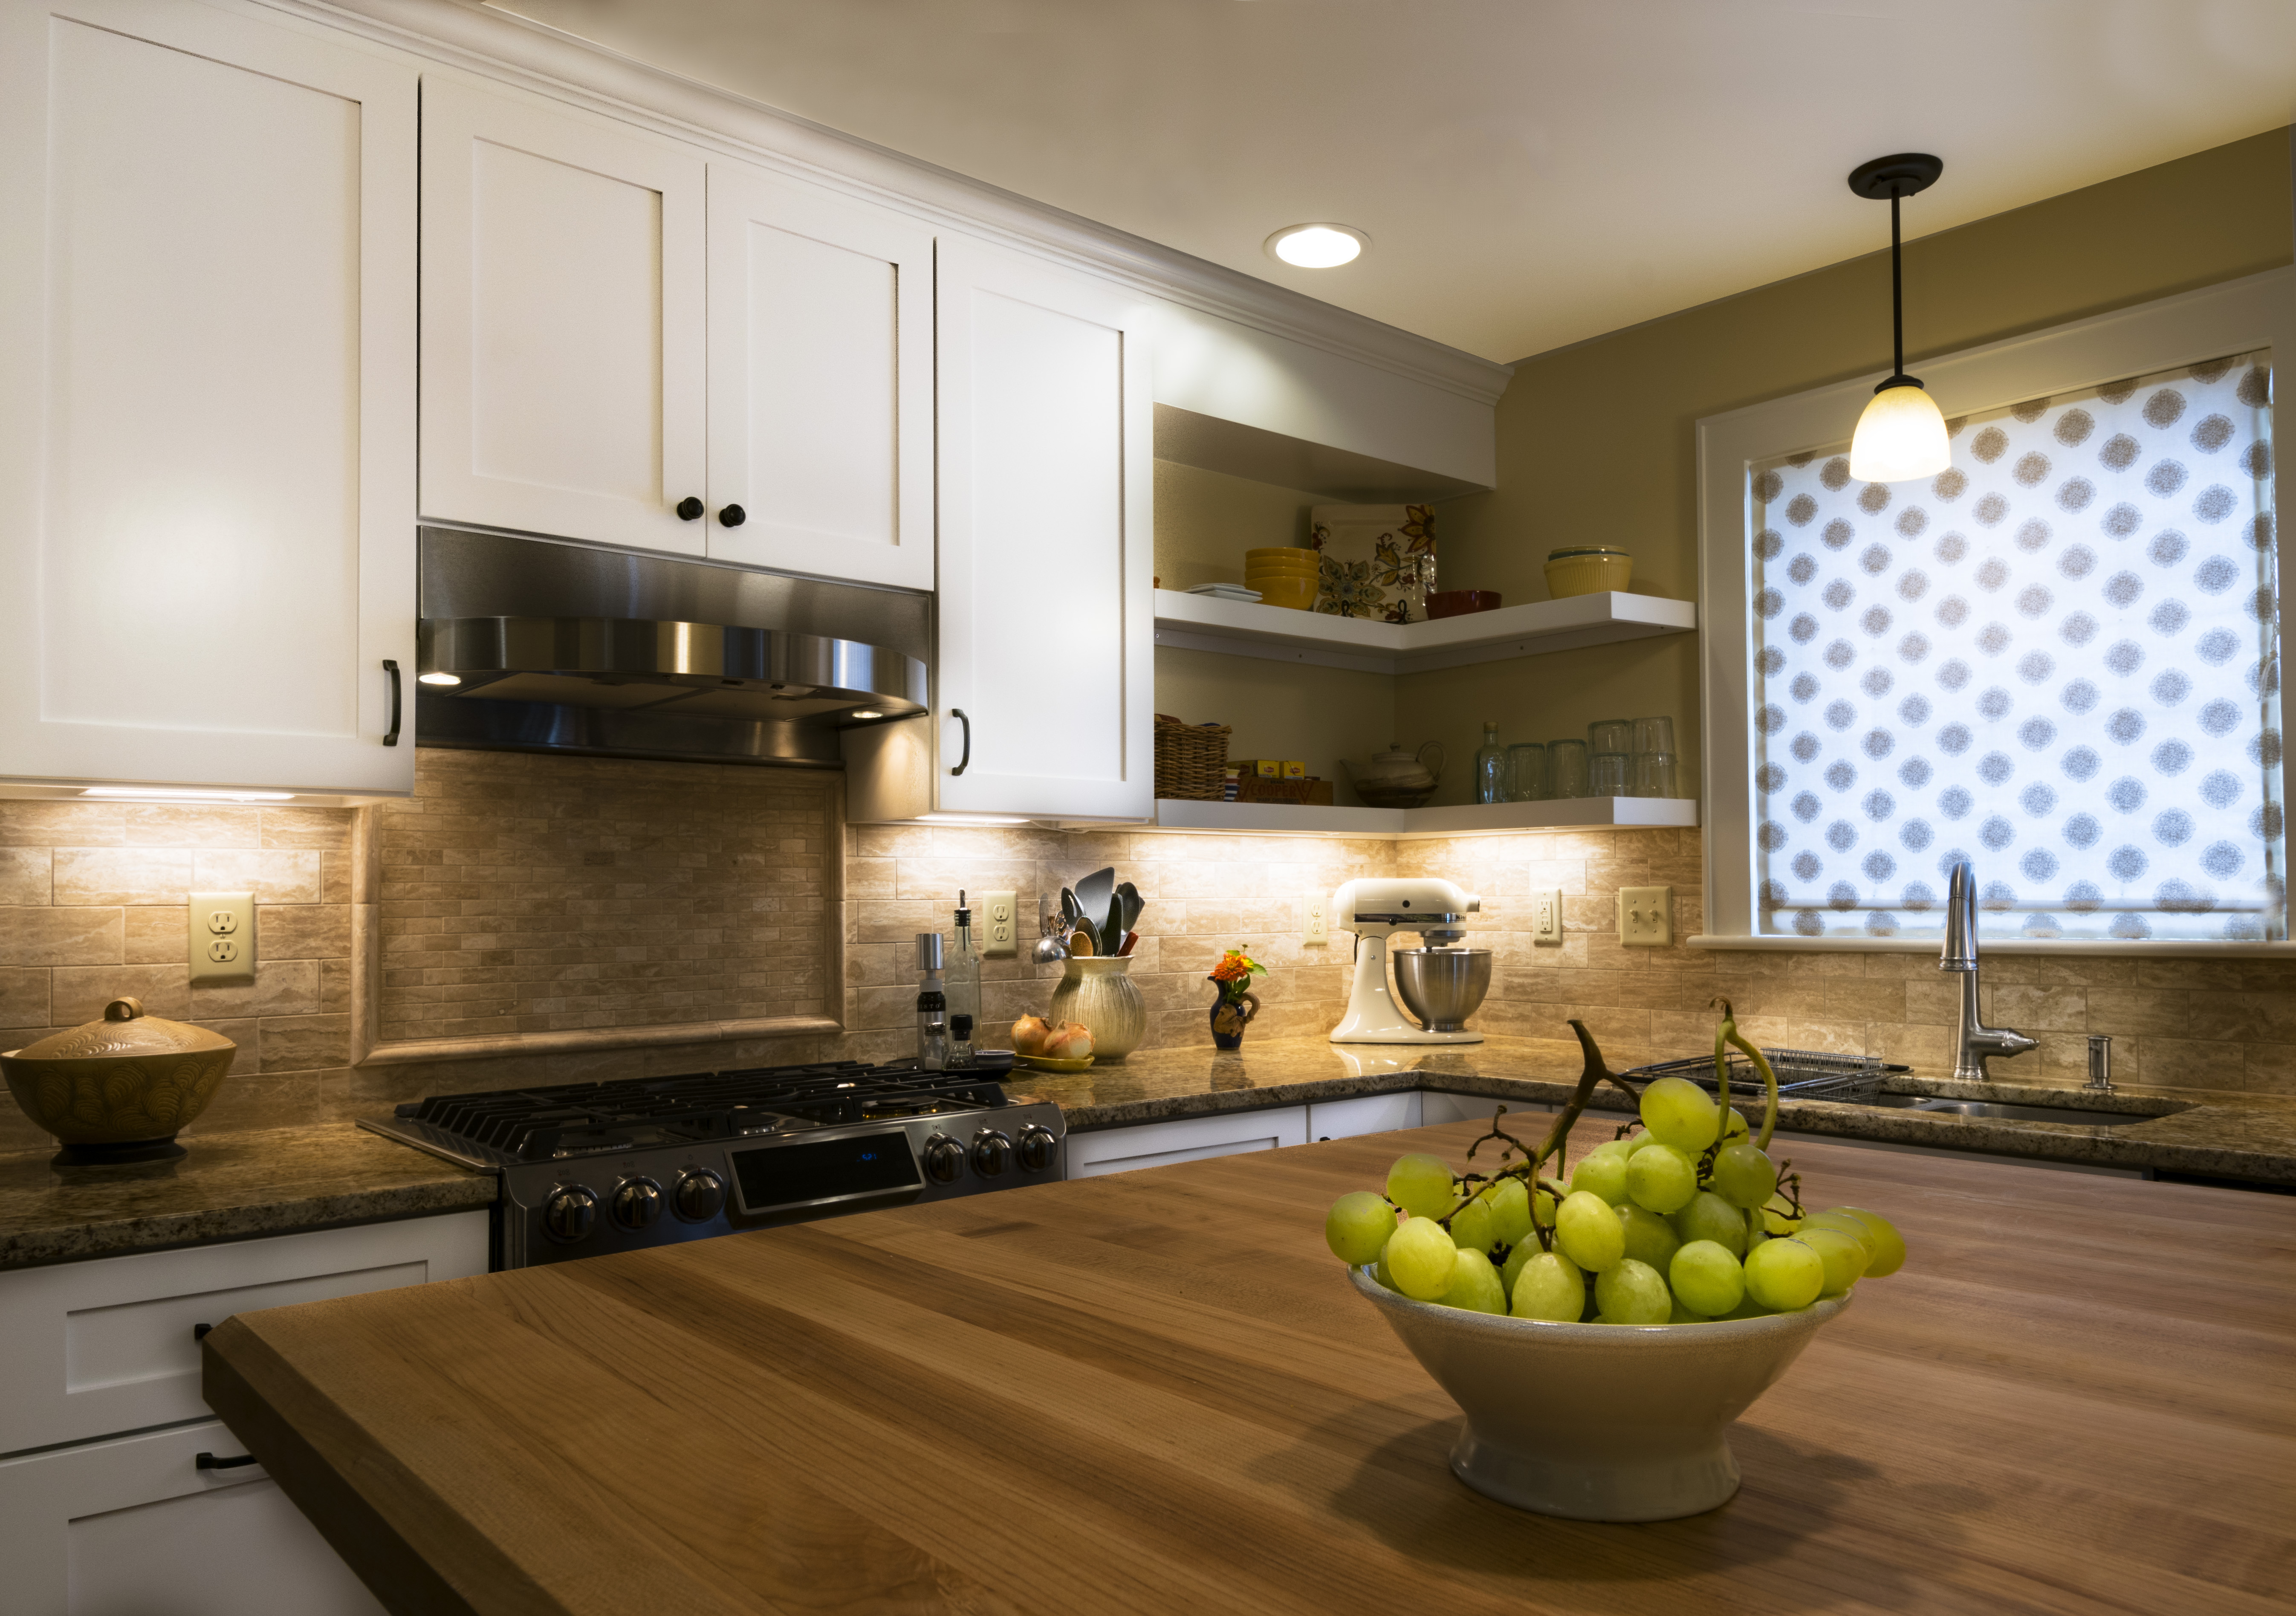 Kitchen_DSC8852